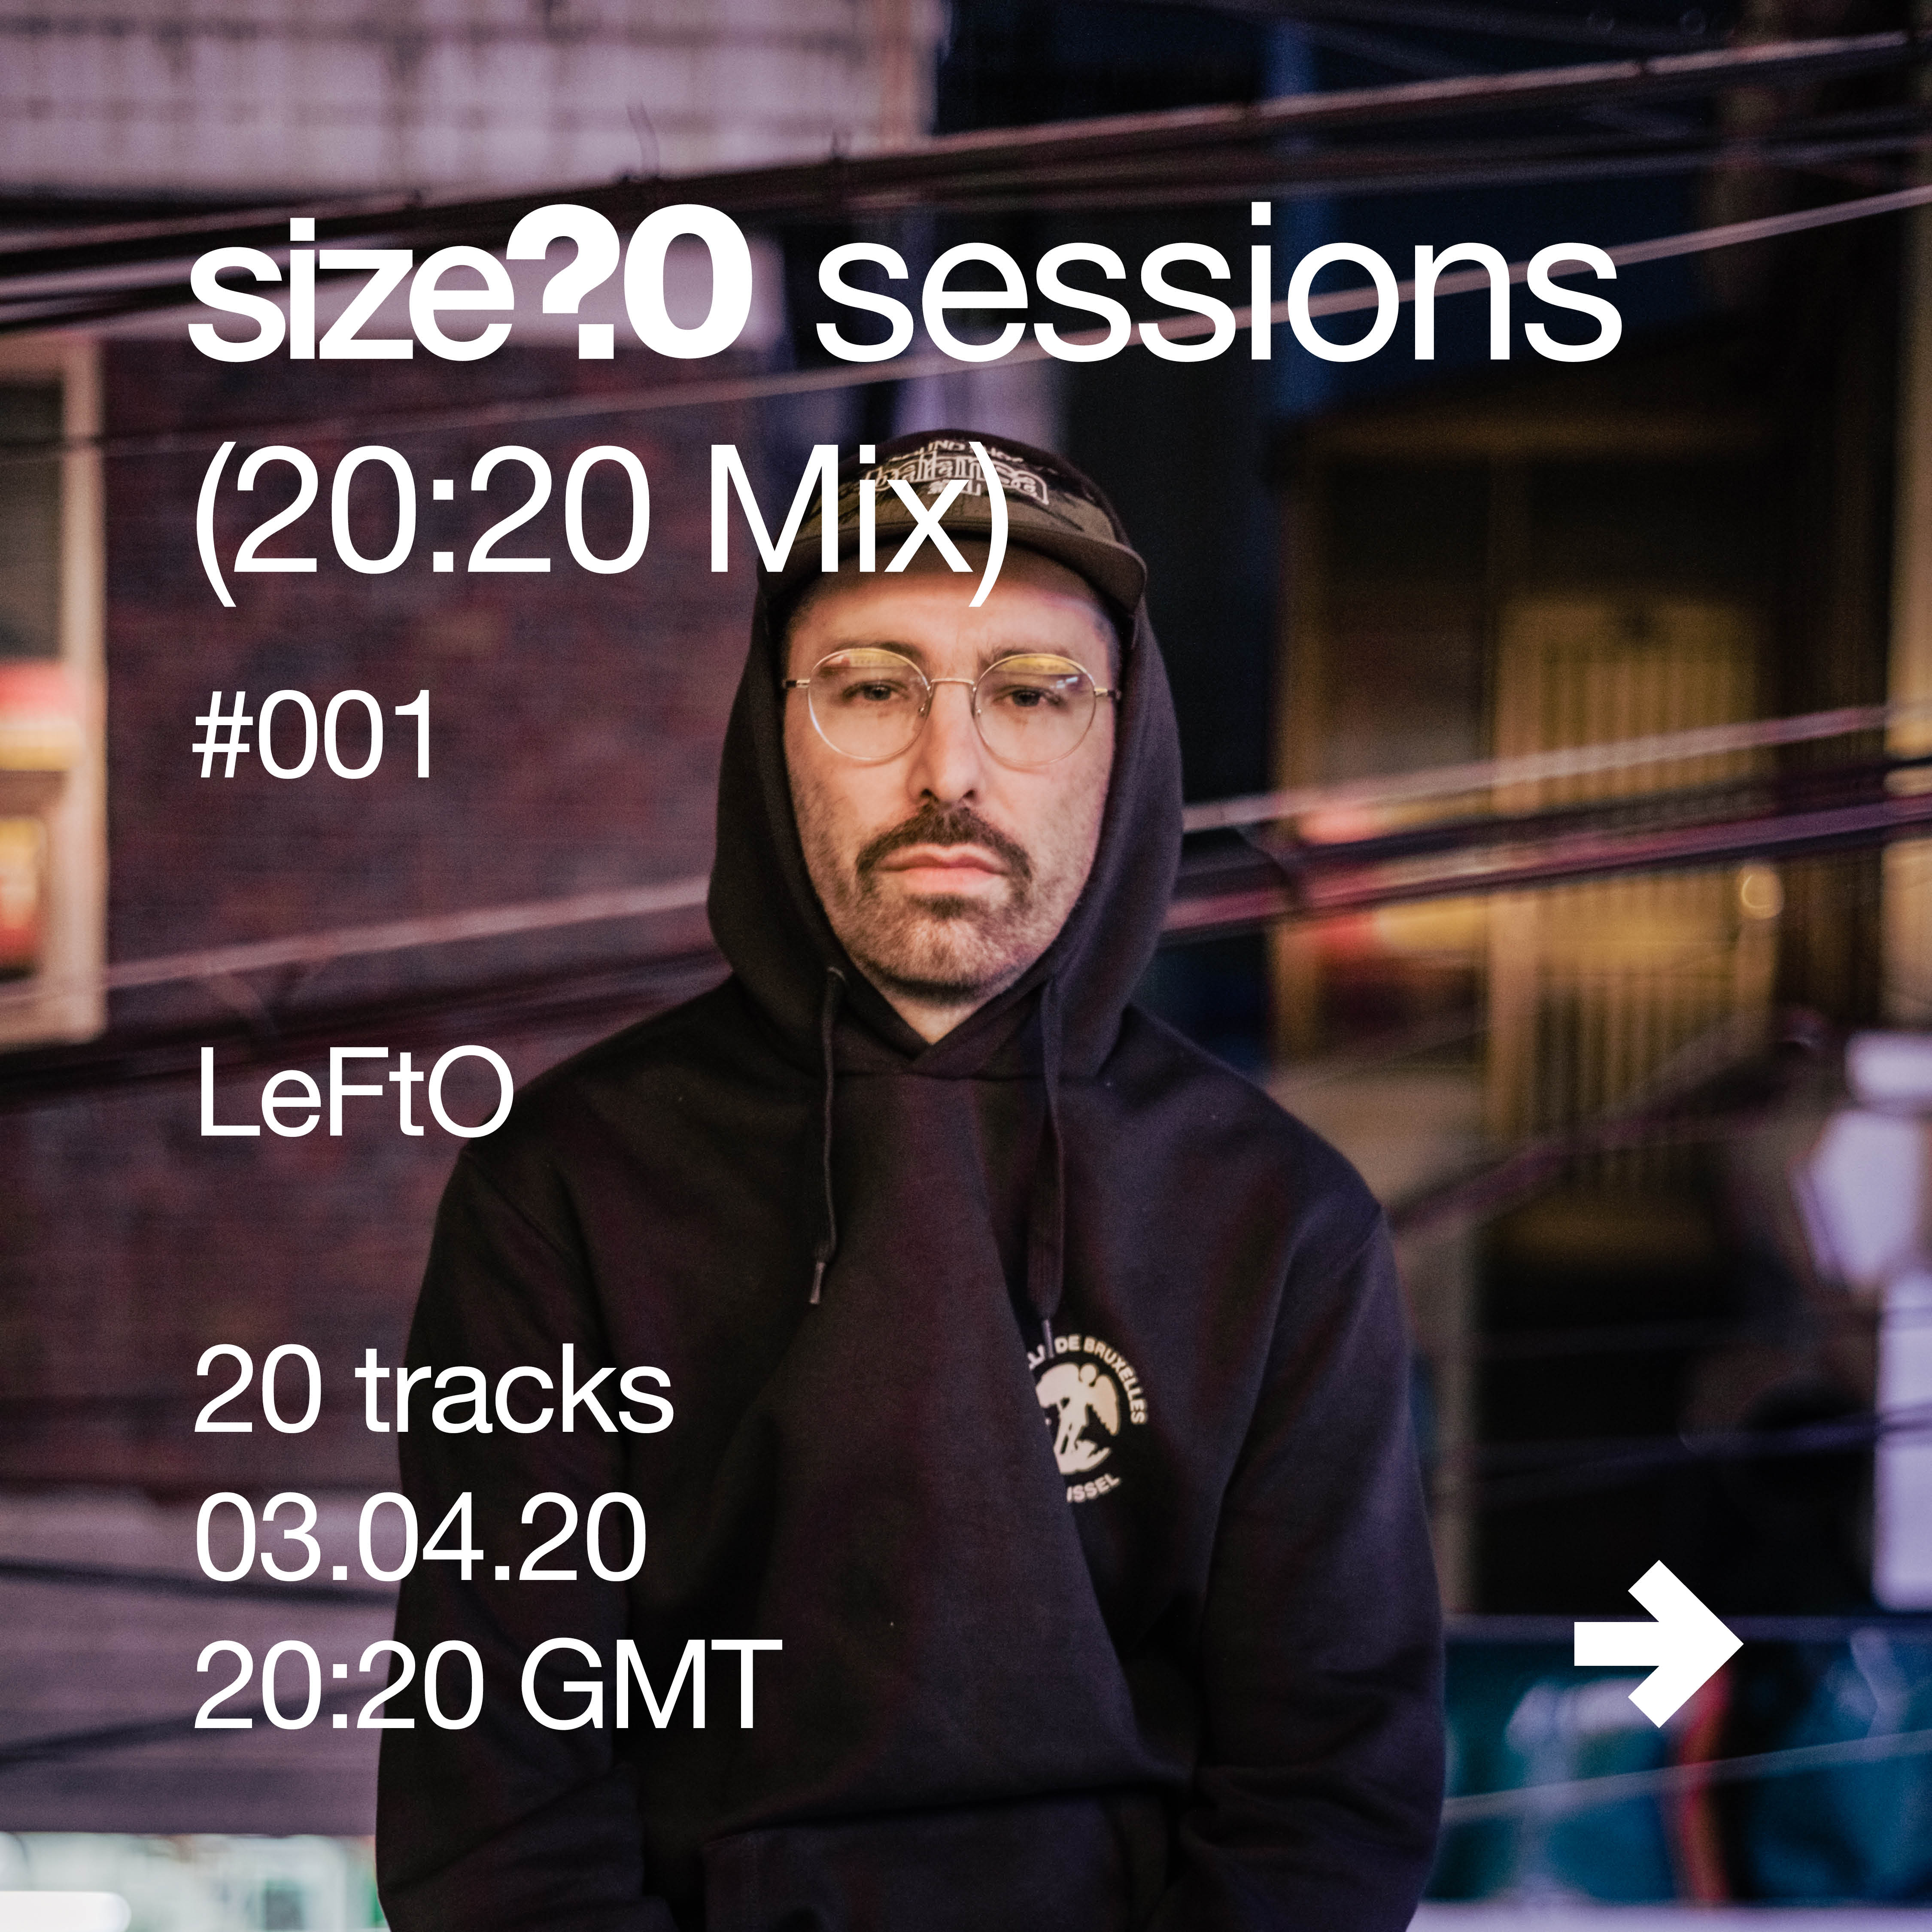 We caught up with LeFtO ahead of his size? sessions (20:20 Mix)